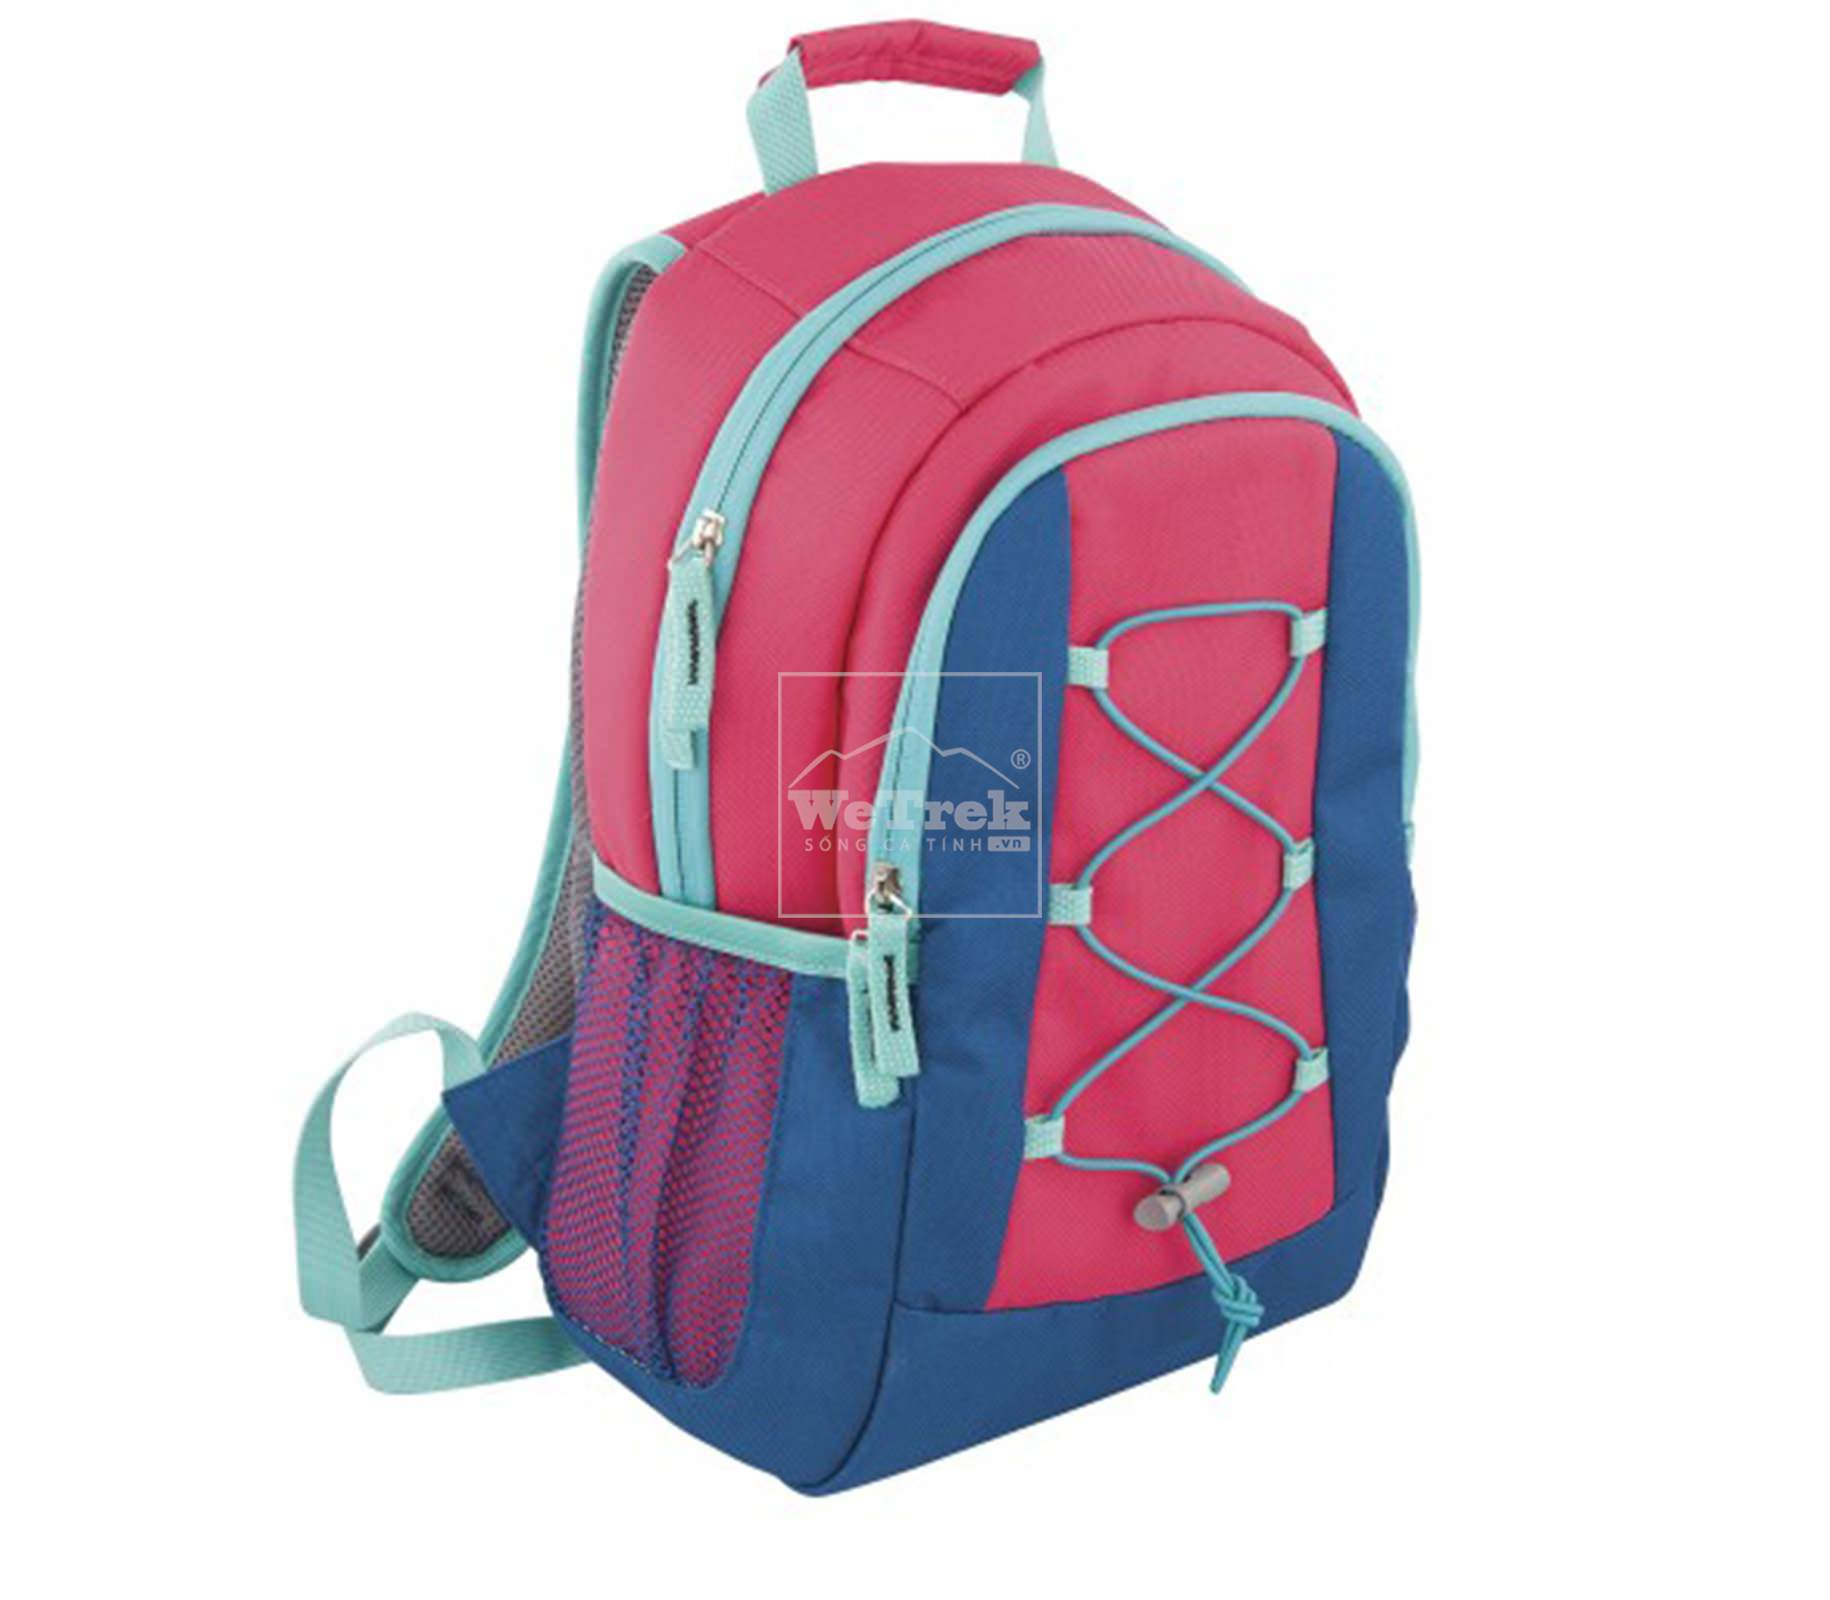 Balo giữ lạnh 10L Coleman Cool Pack Pink 2000024610 - 7401